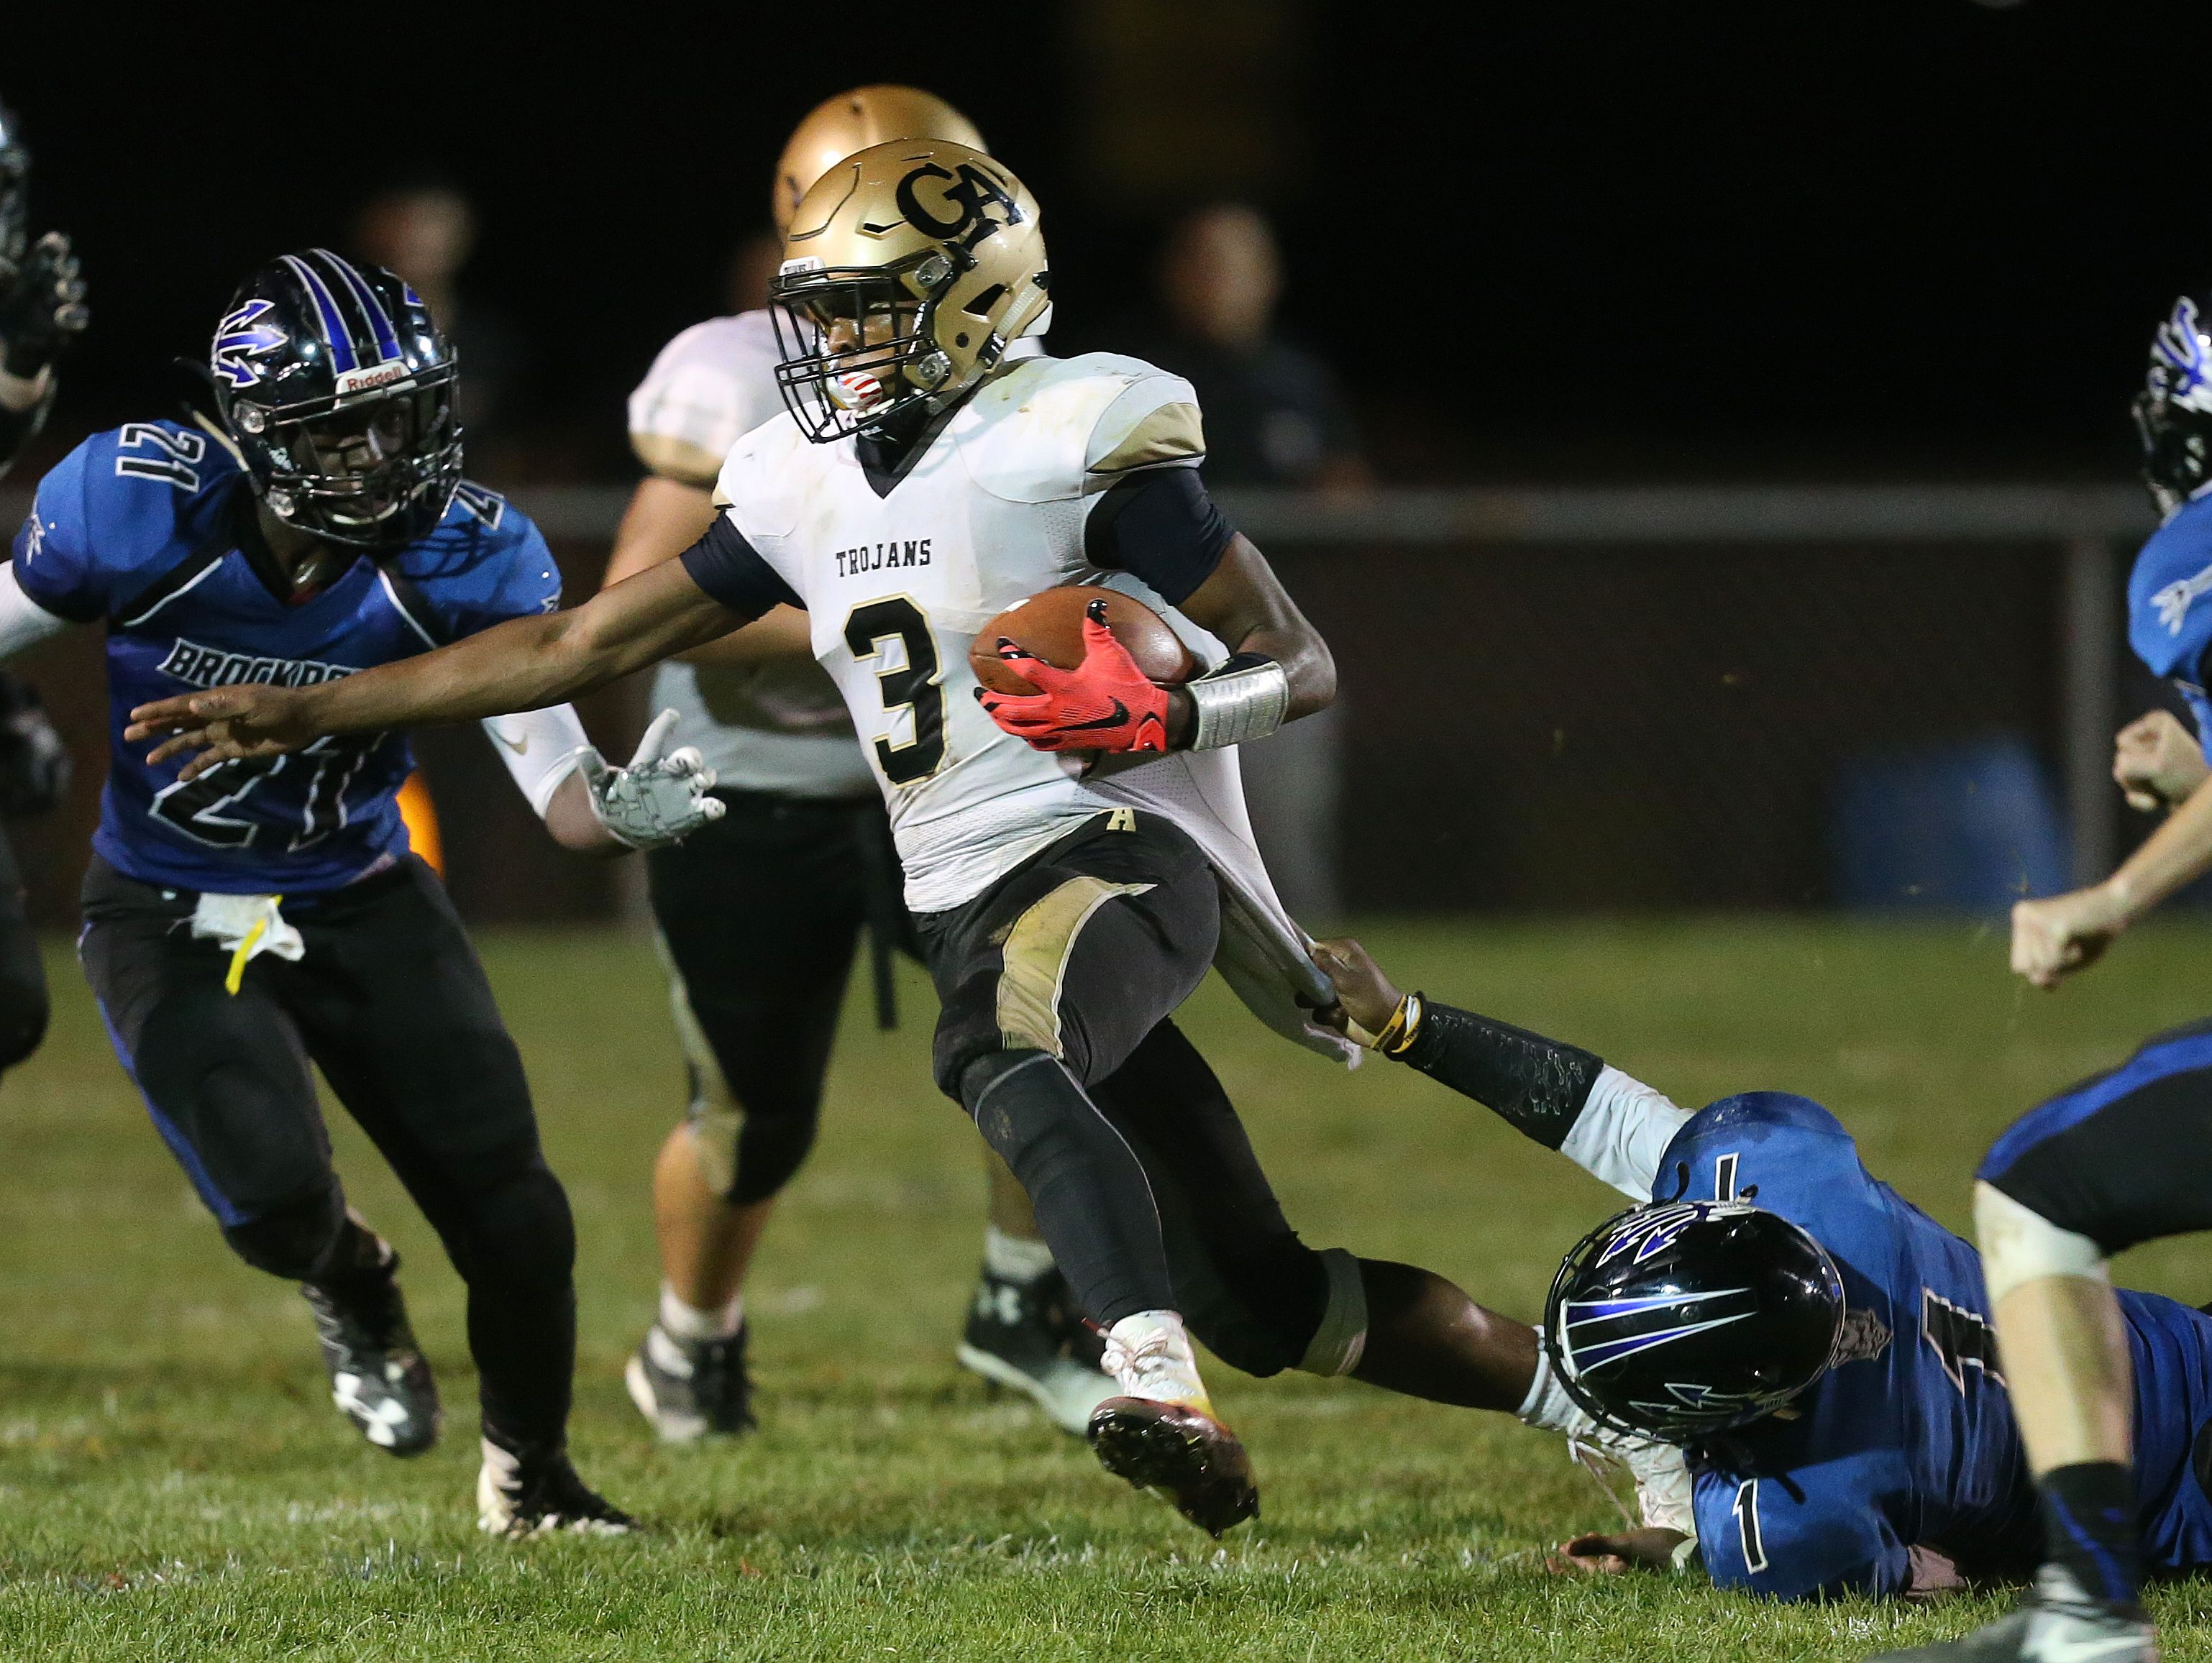 Brockport's Cory Gross hangs on the the shirt tail of Athena quarterback Tavon Granison (3) as he scrambles downfield